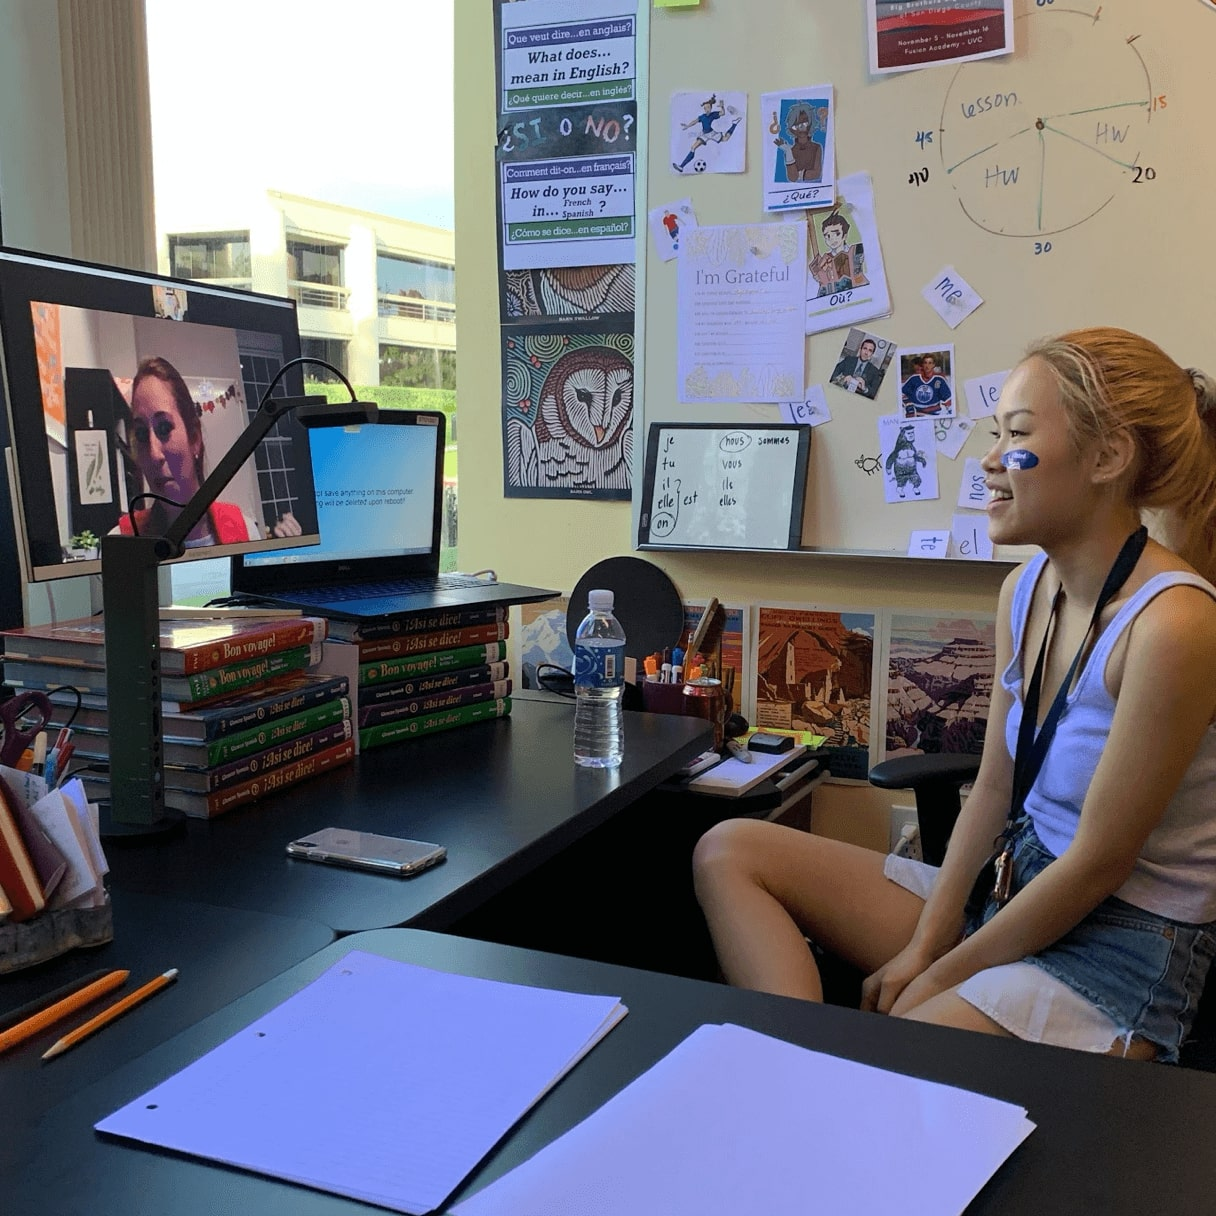 Student and teacher video chat while student works on course work at their desk at home.